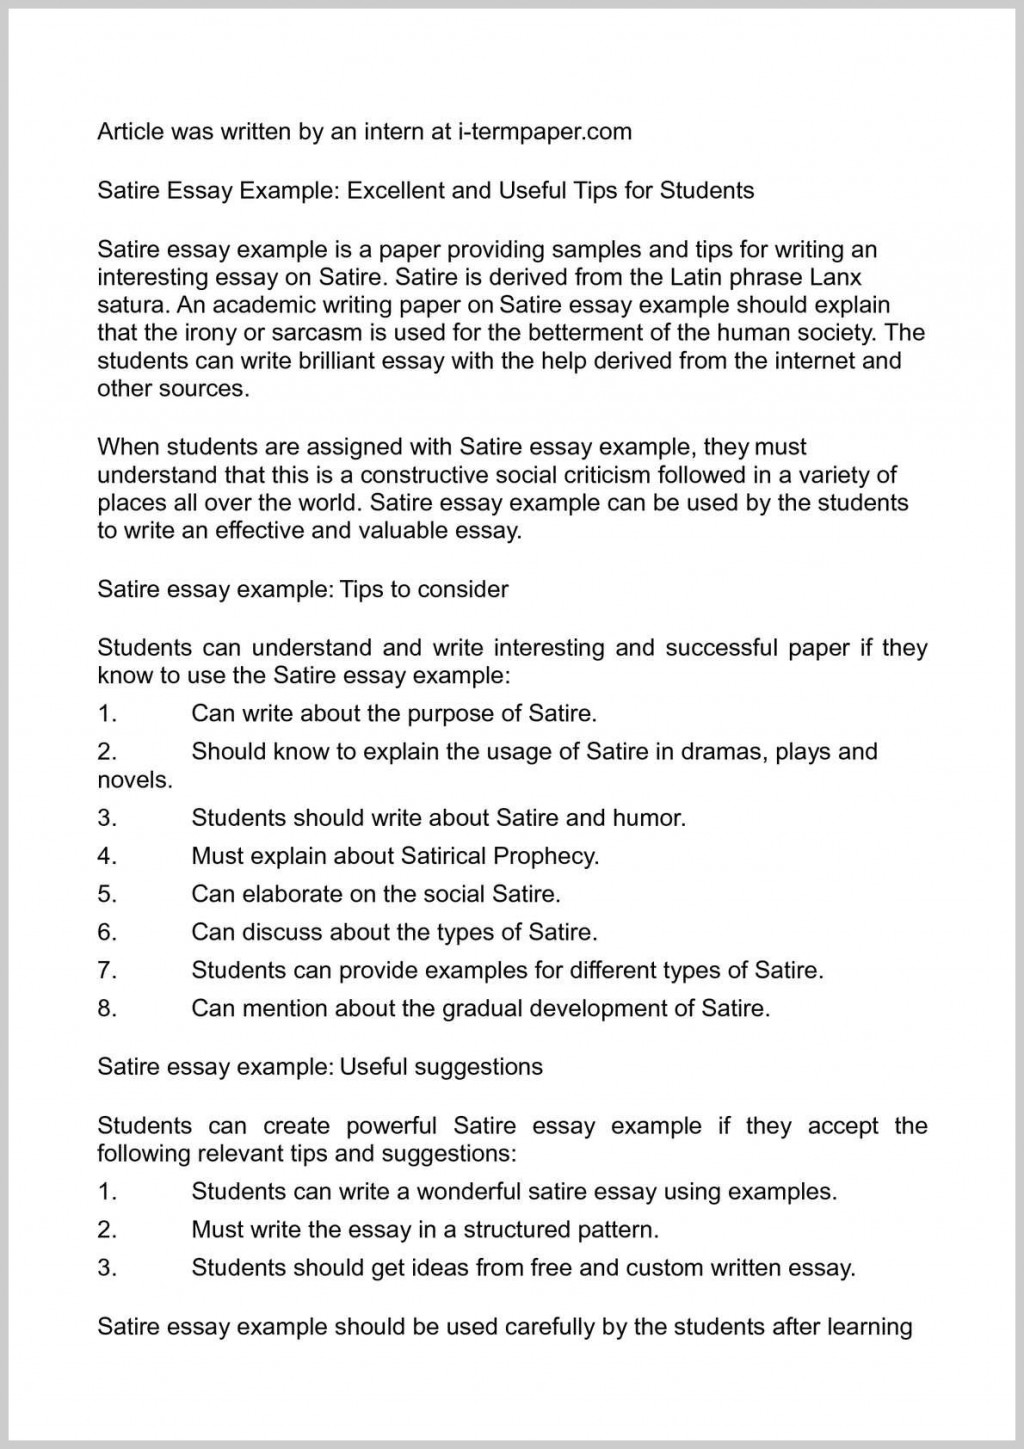 001 Good Satire Essays Of Topics Satirical Exceptional Essay Examples On Social Media Issues Large